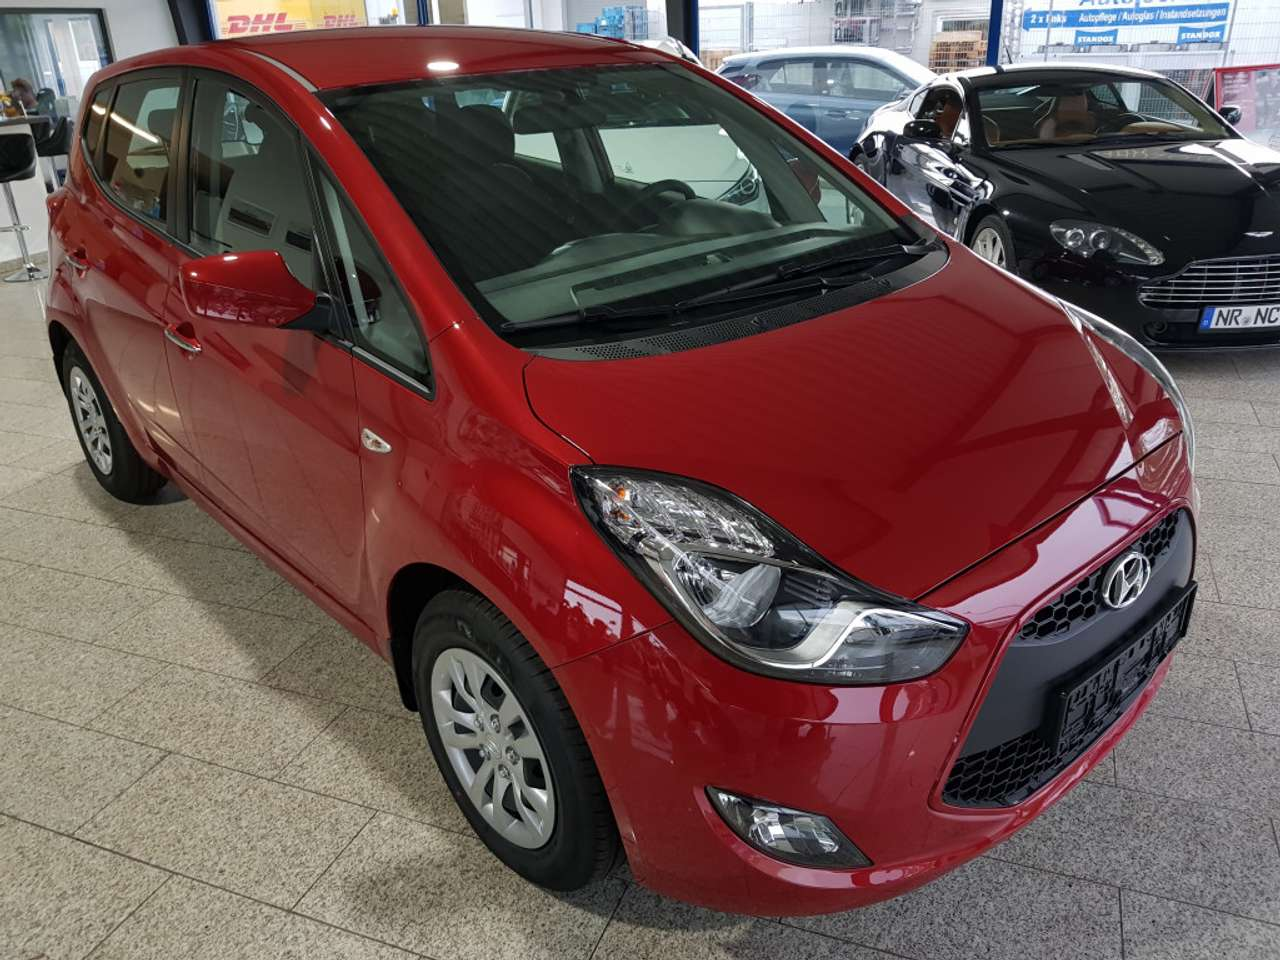 lhd HYUNDAI IX 20 (04/2019) - RED